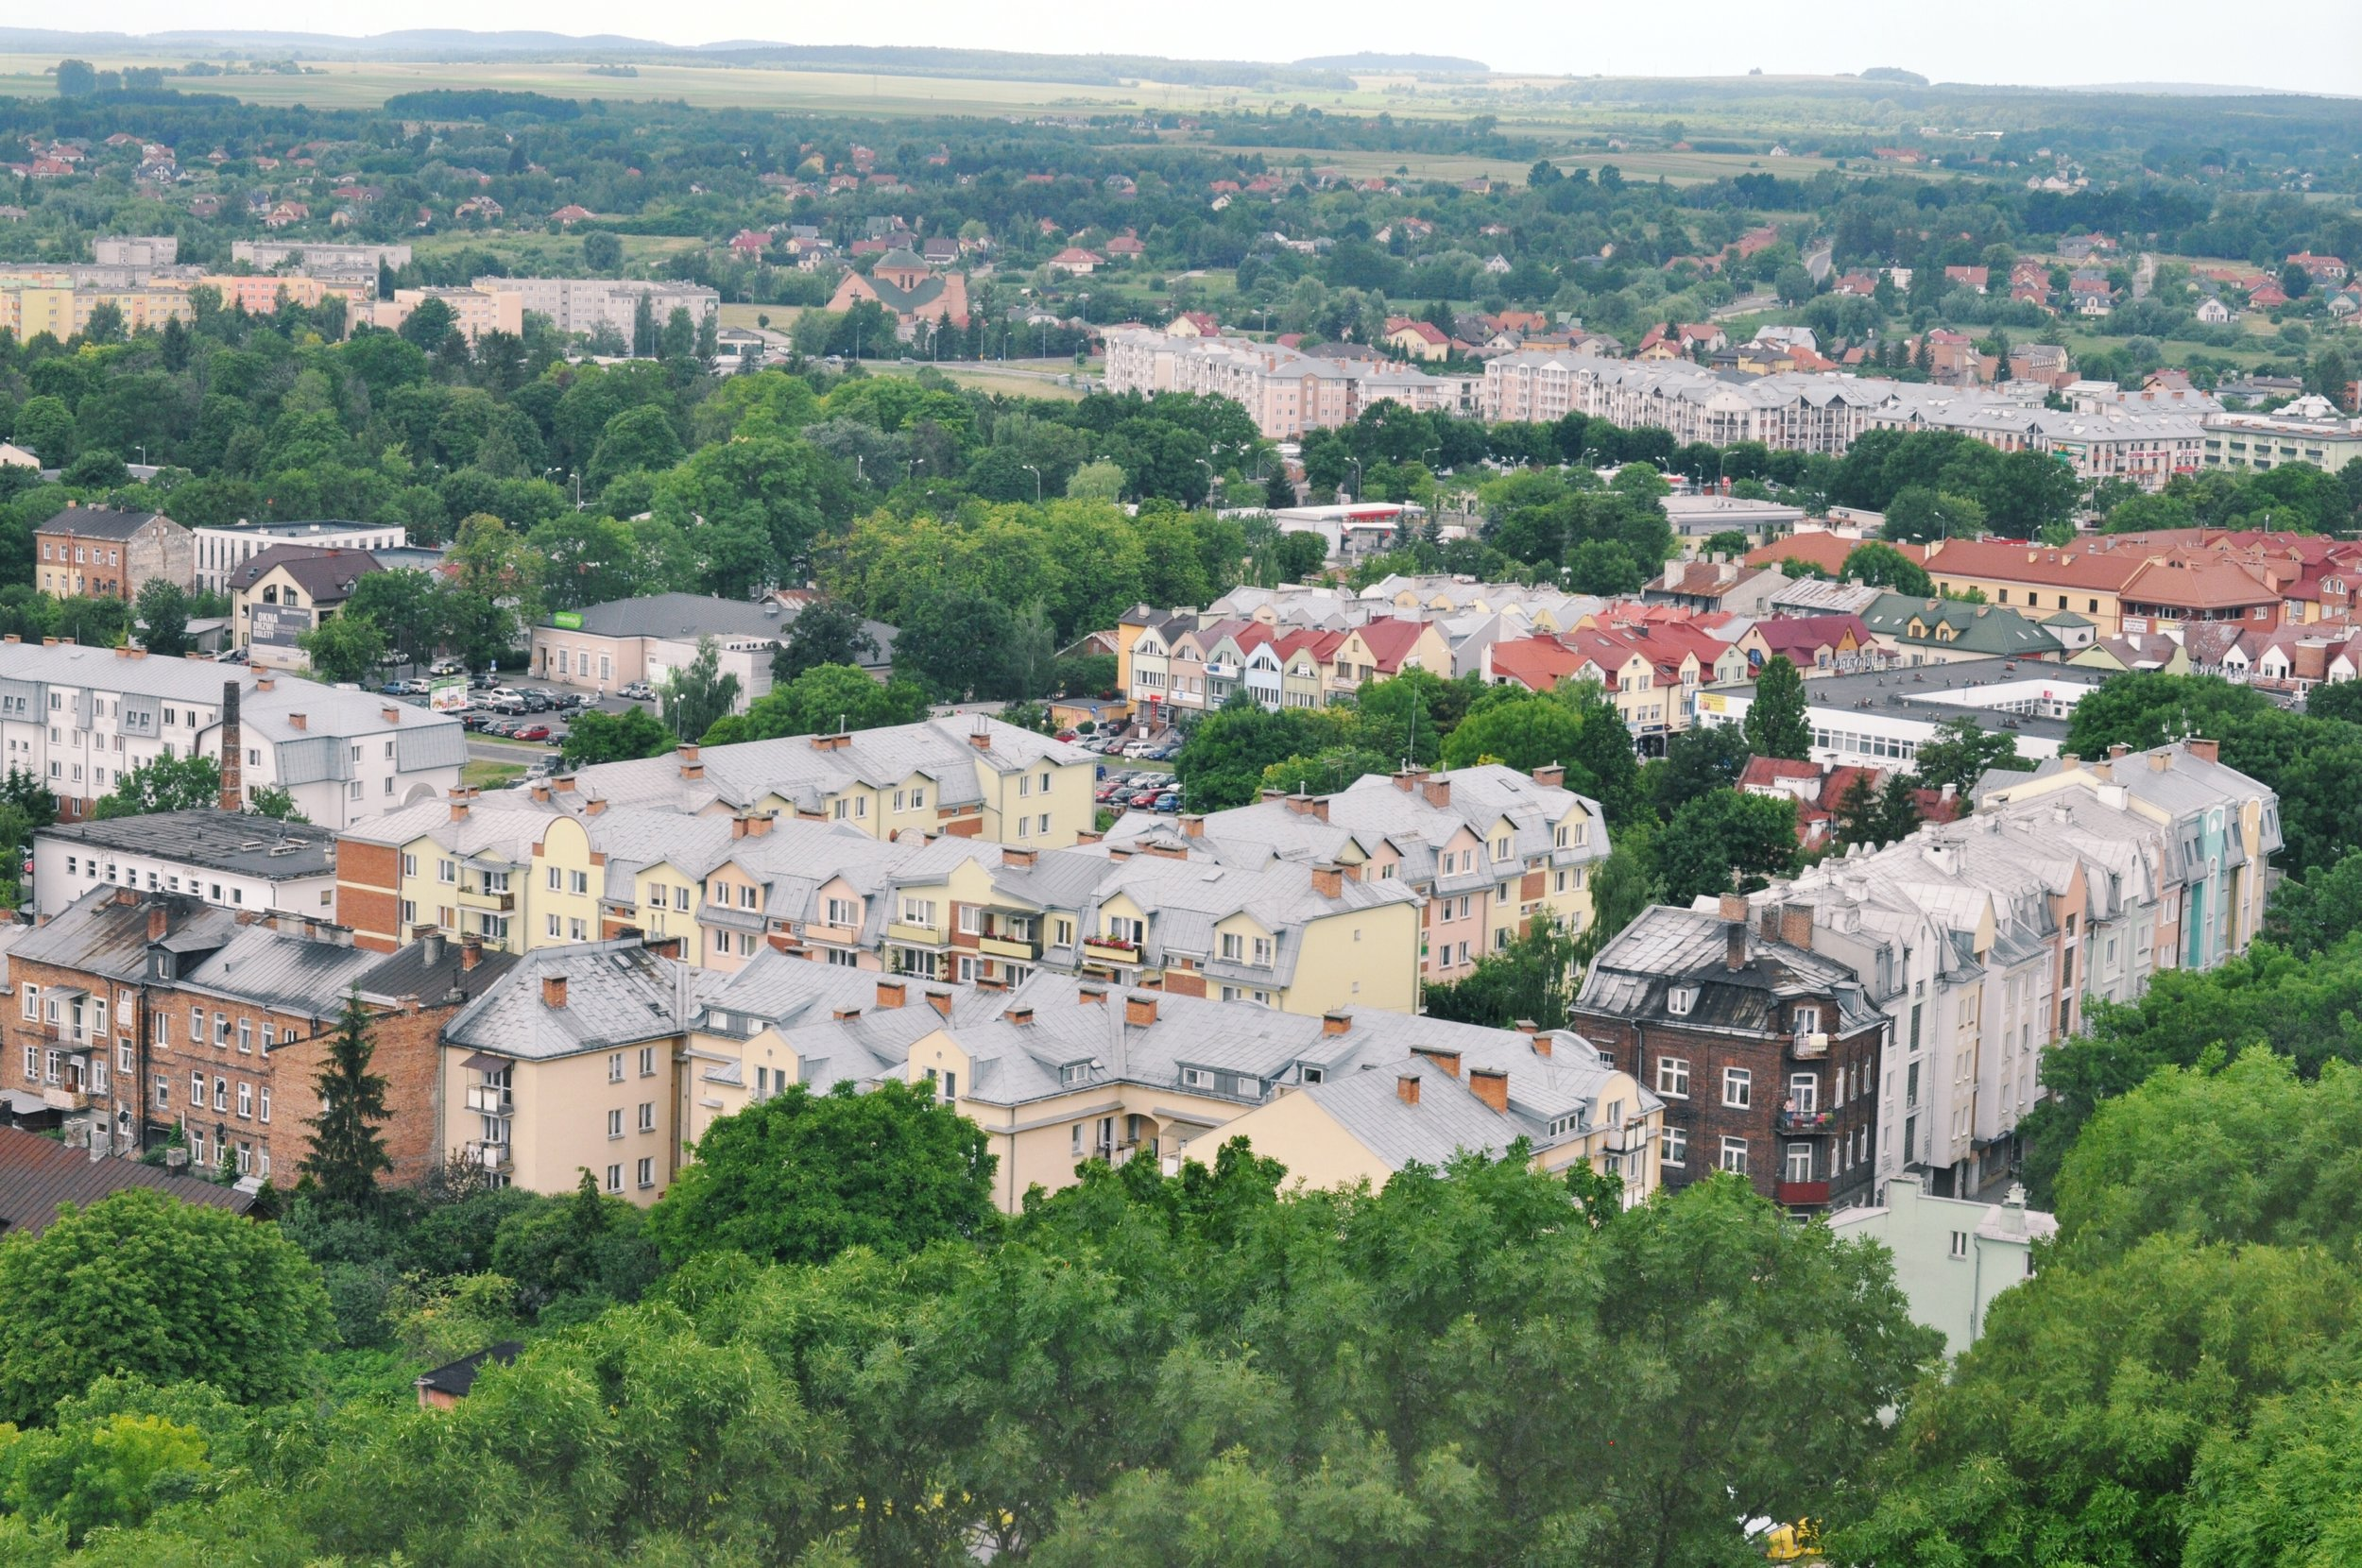 View overlooking Chelm, Poland